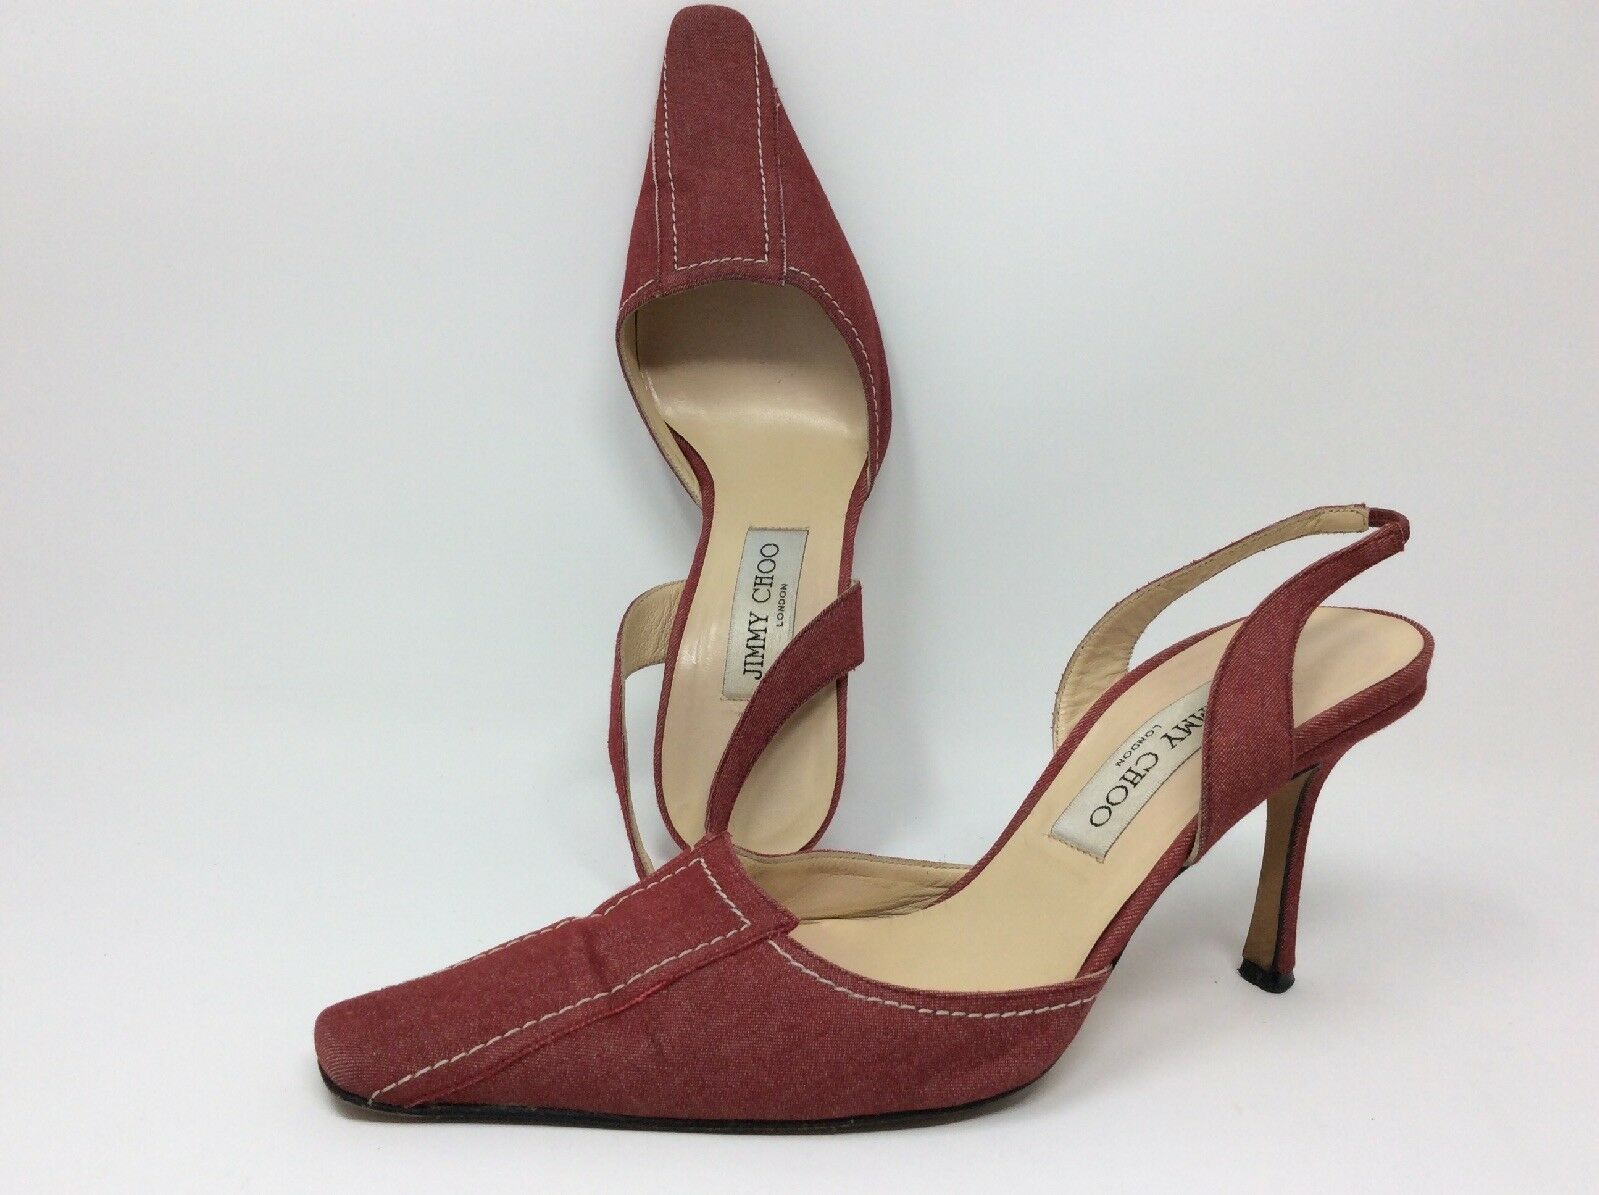 Jimmy Choo rot, Pumps, 38,Sling-Backs,High Heels, rot, Choo Jeansoptik, innen/Sohle Leder, cc0e03